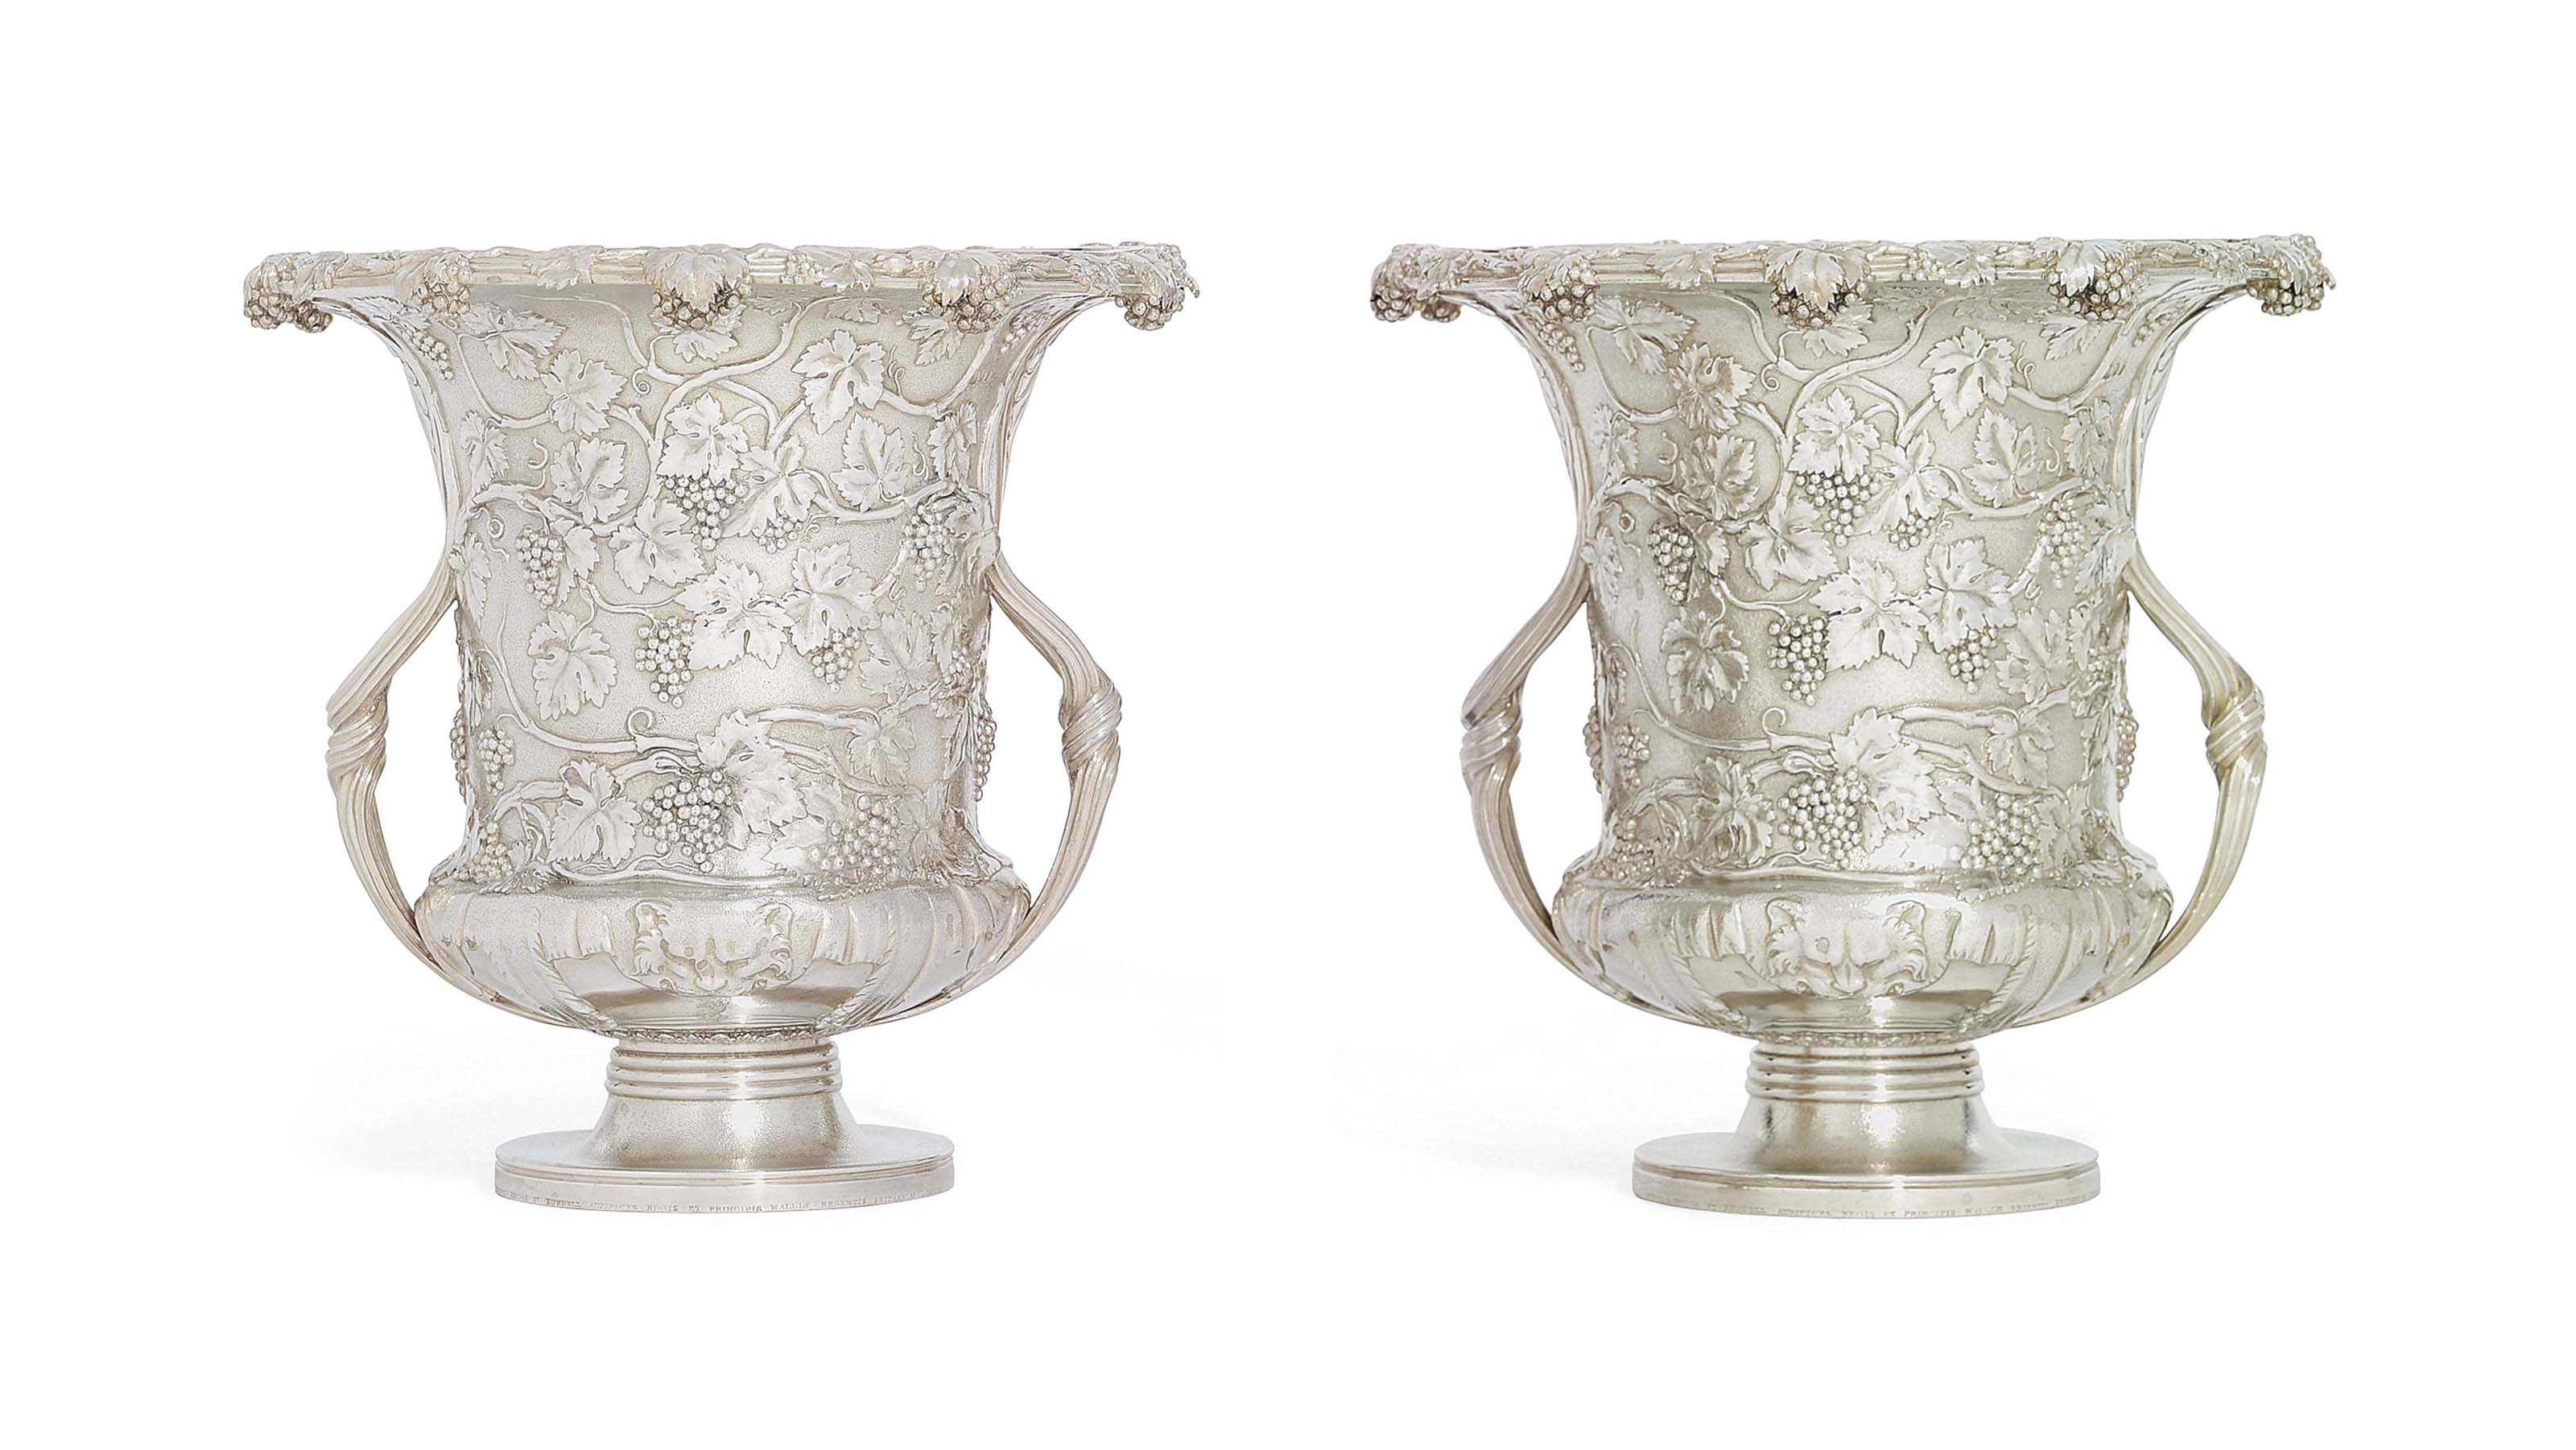 A PAIR OF WILLIAM IV SILVER WINE-COOLERS, COLLARS AND LINERS